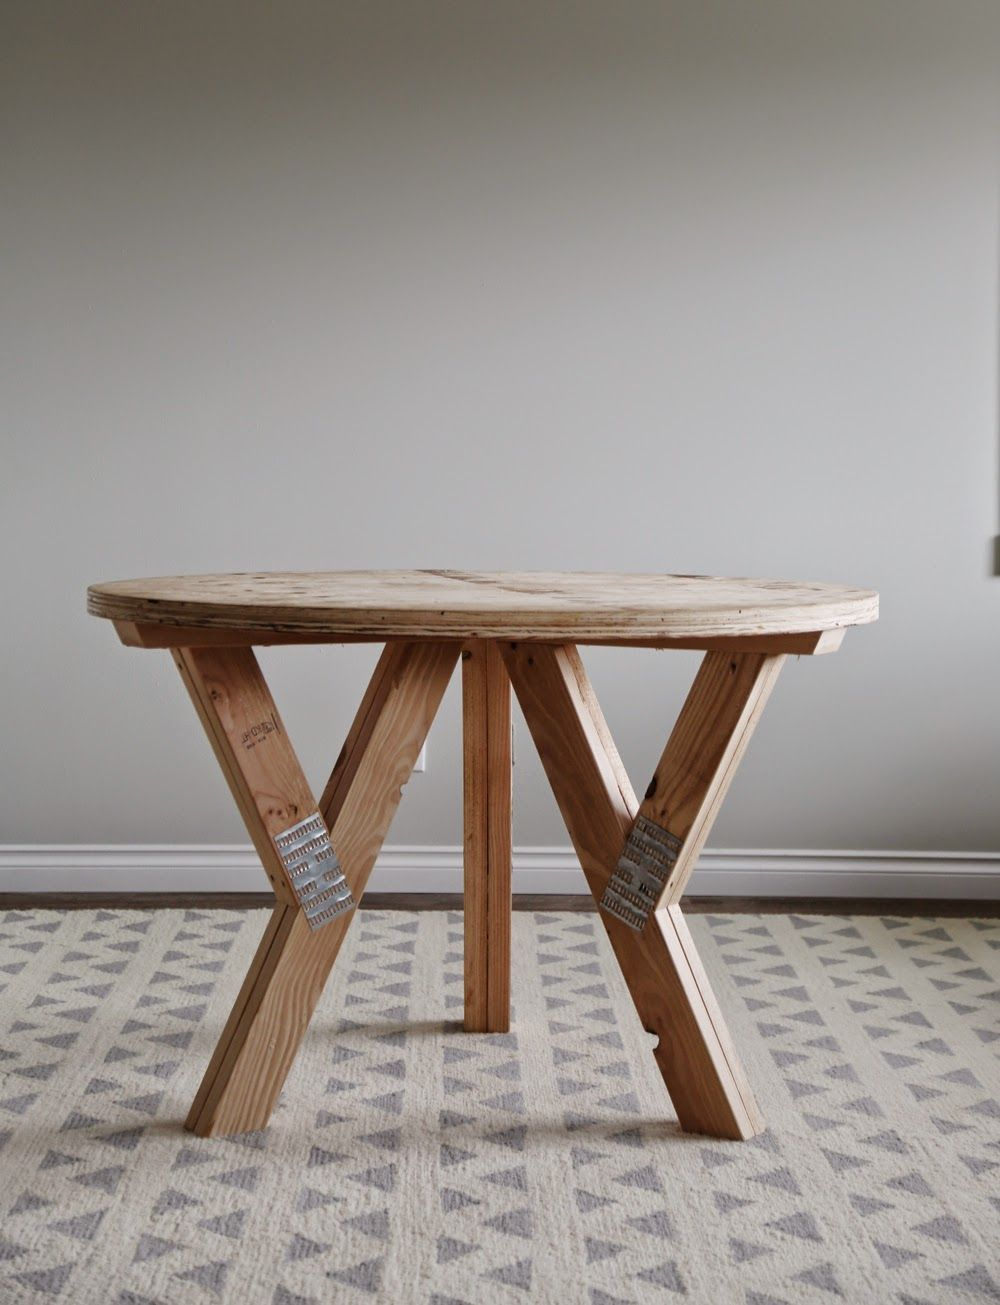 How to build a table base for a round table - Build A Y Truss Round Table Make It Bigger To Seat 6 And Use Nicer Wood But Good Base